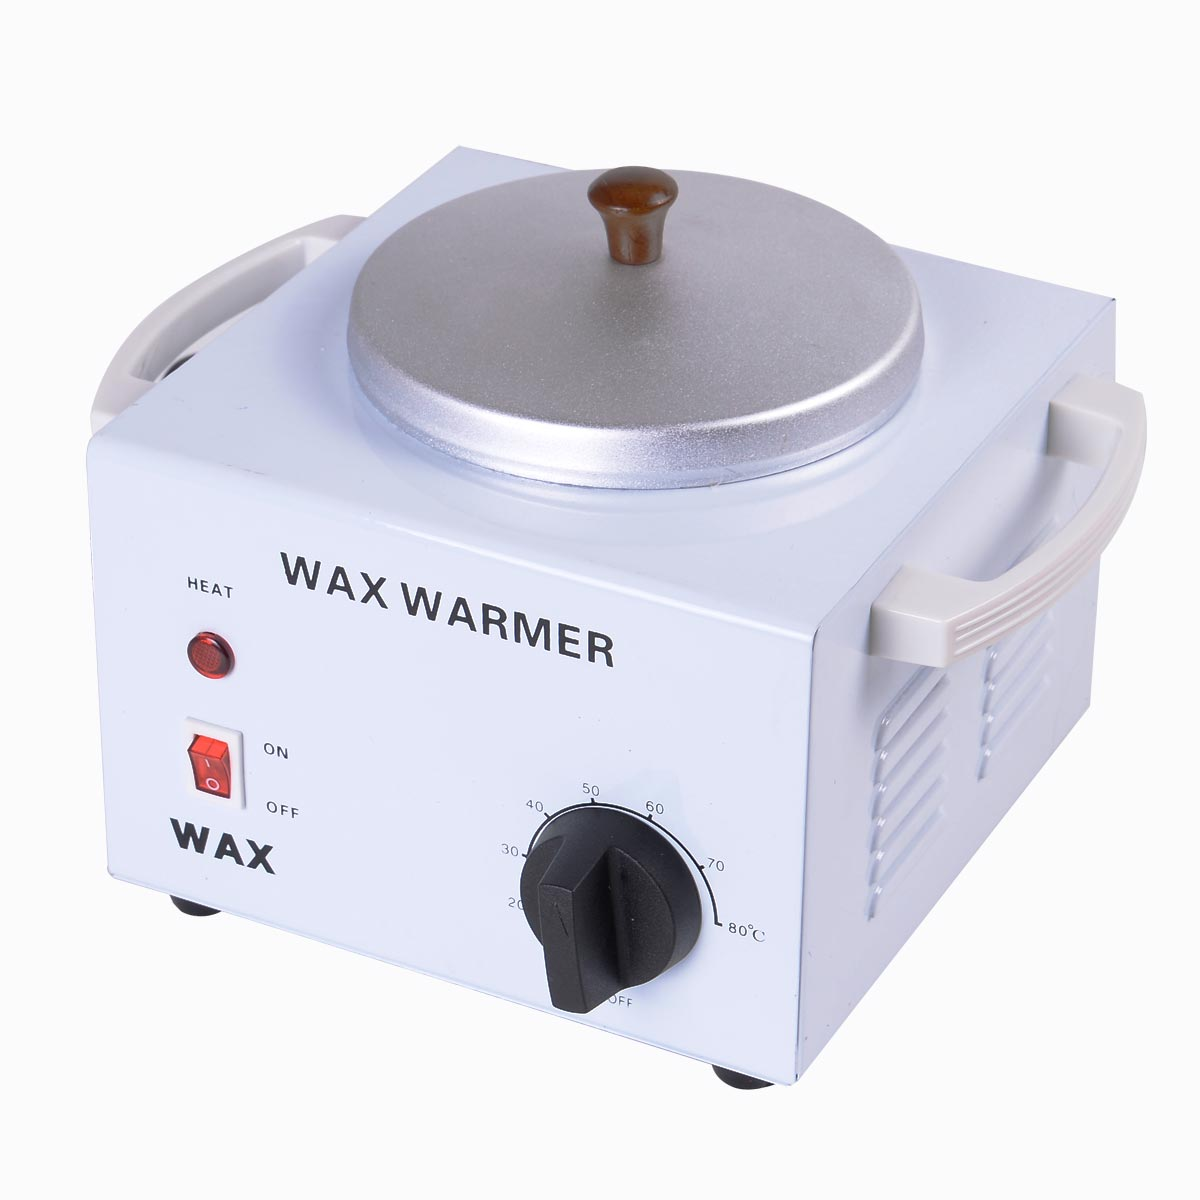 Professional Single Pot Wax Warmer Heater Machine Depilatory Salon Hot Paraffin HB82052-110V